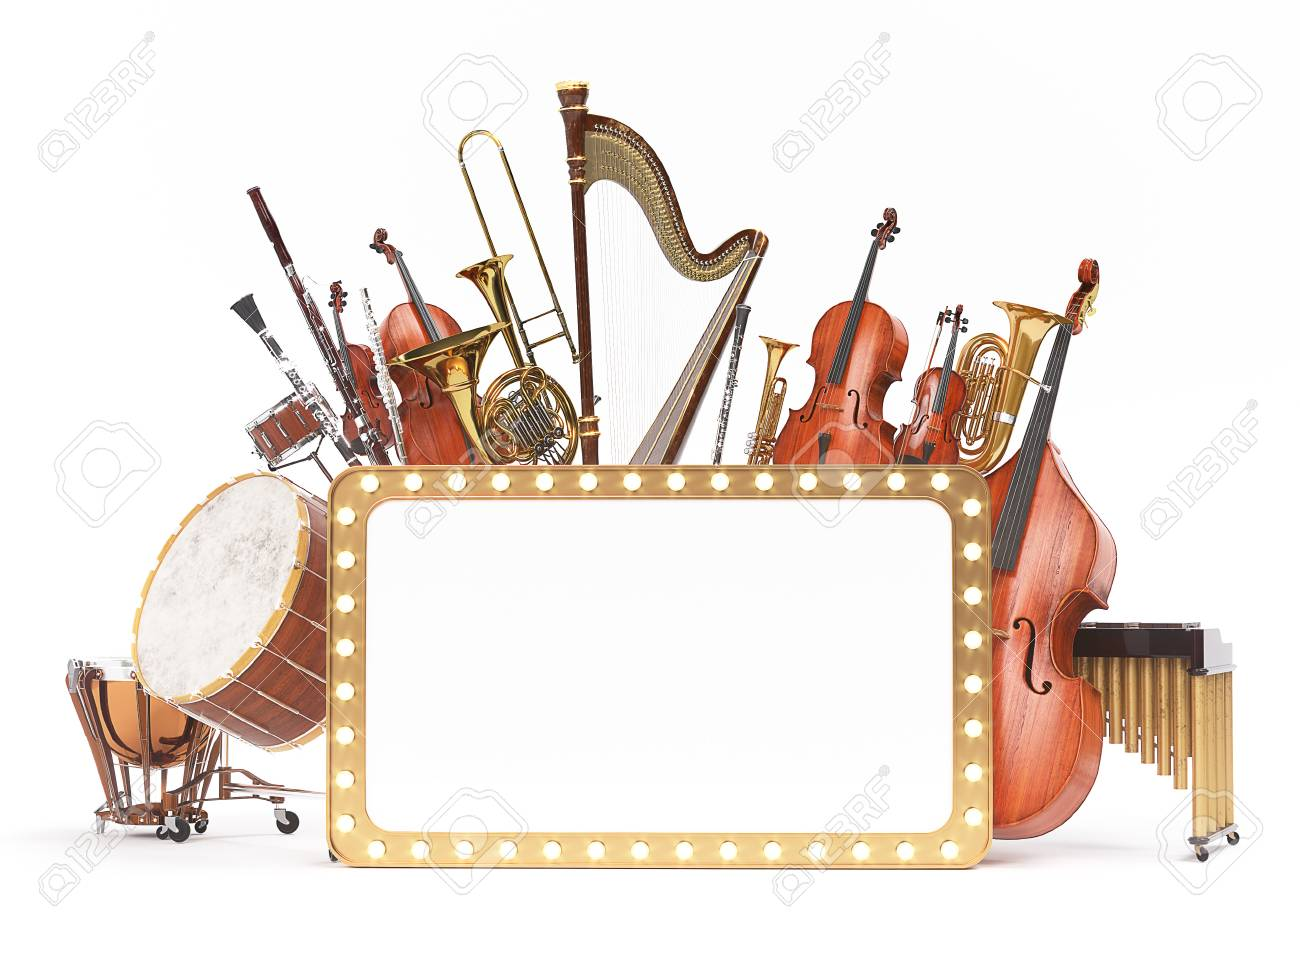 Orchestra musical instruments 3D rendering